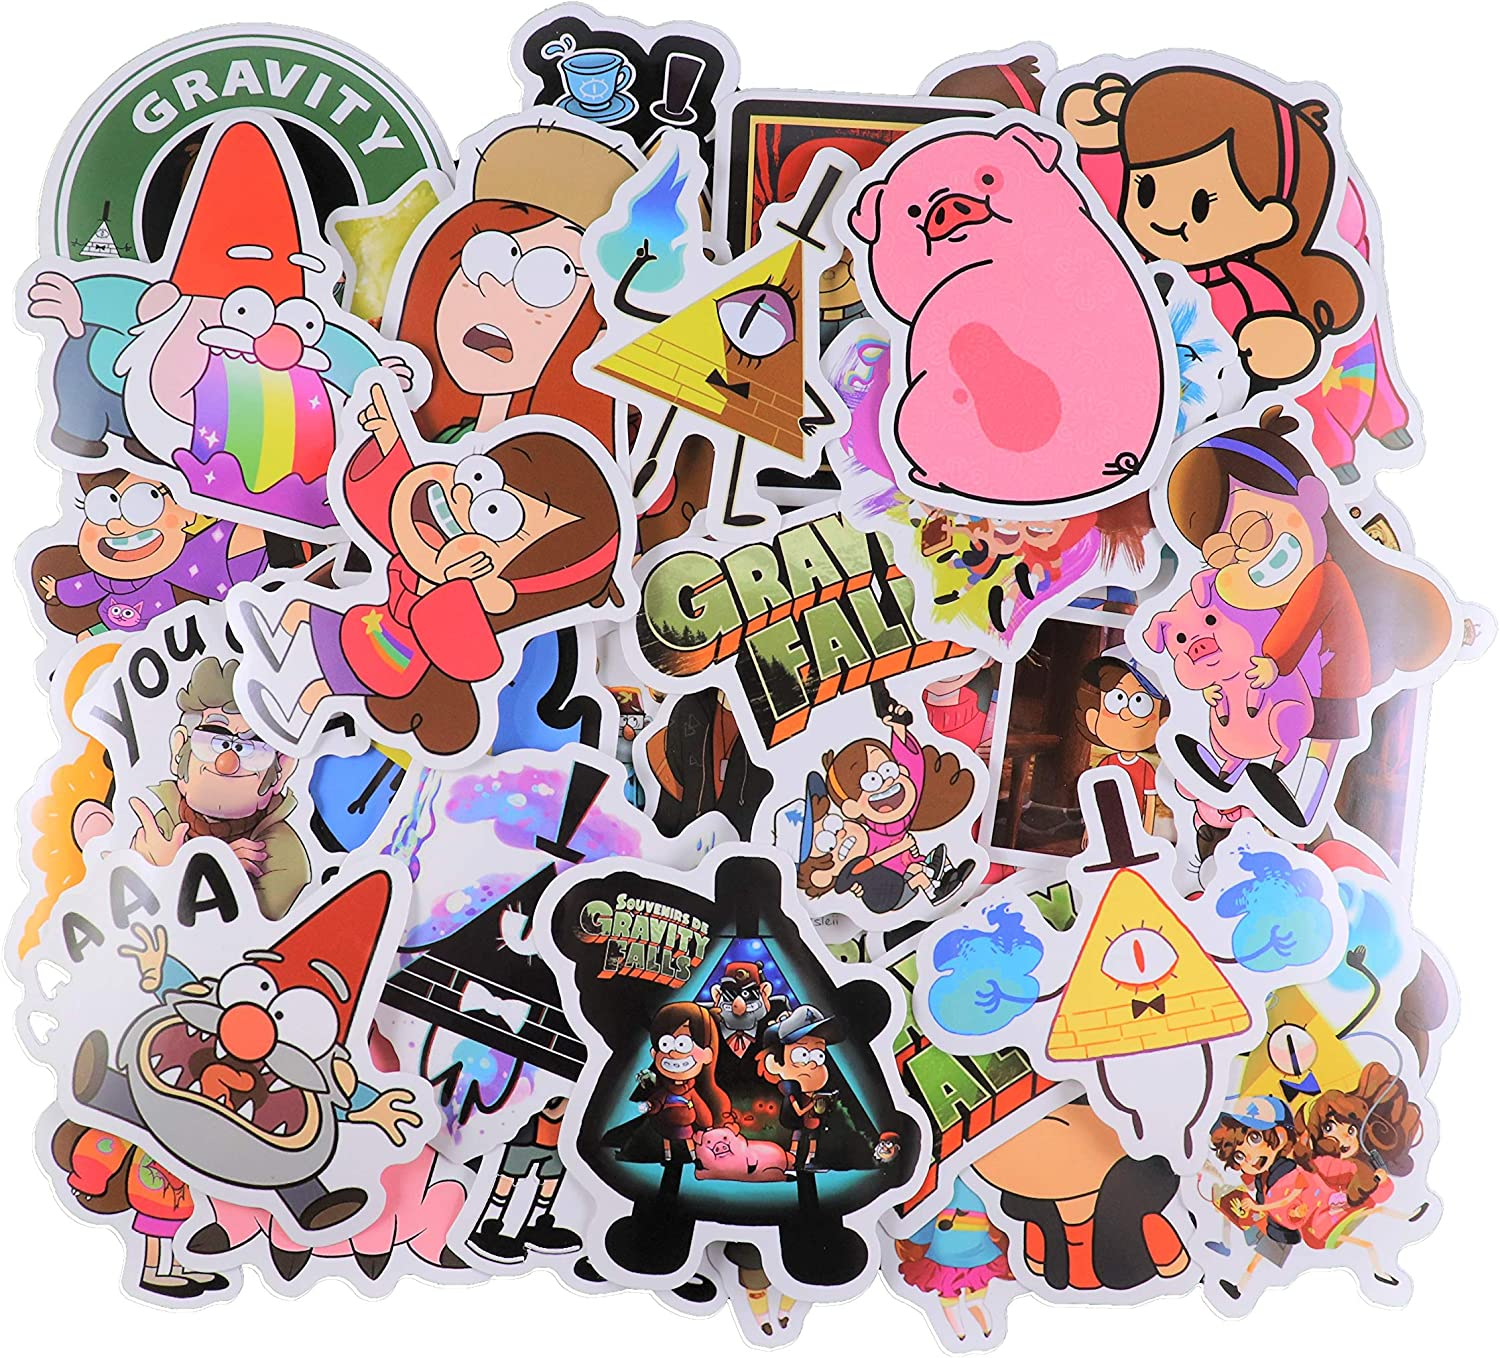 Cartoon Stickers [42pcs] Gravity Falls Theme PVC Waterproof Stickers Decorate Laptop, Notebooks, Car, Bicycle, Skateboards, Luggage